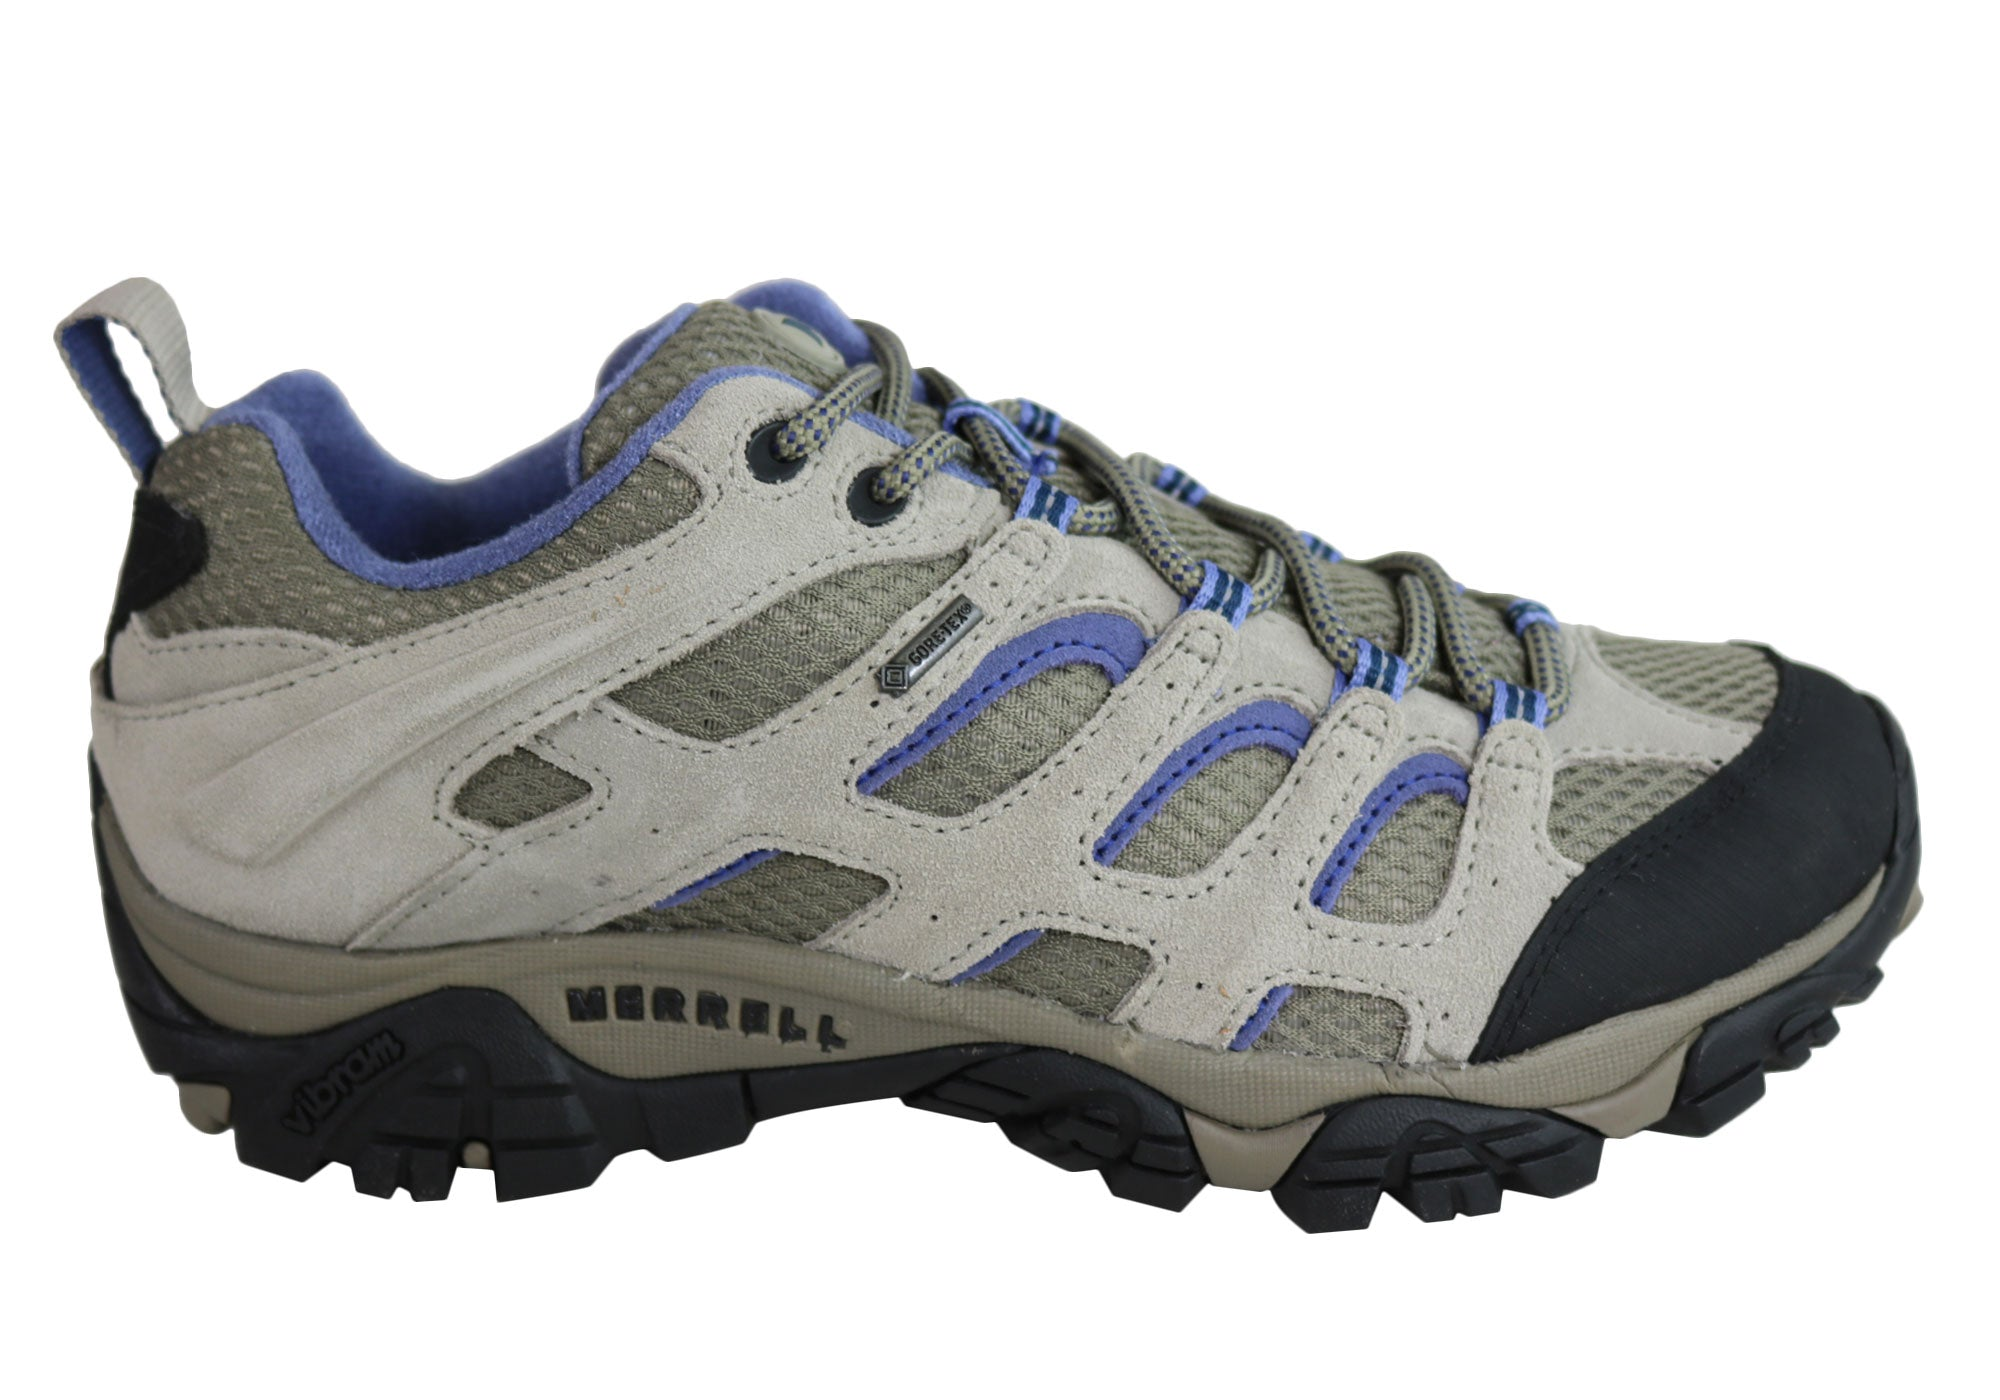 f01f0b9f Merrell Moab Ventilator Gore-Tex Womens Hiking Shoes